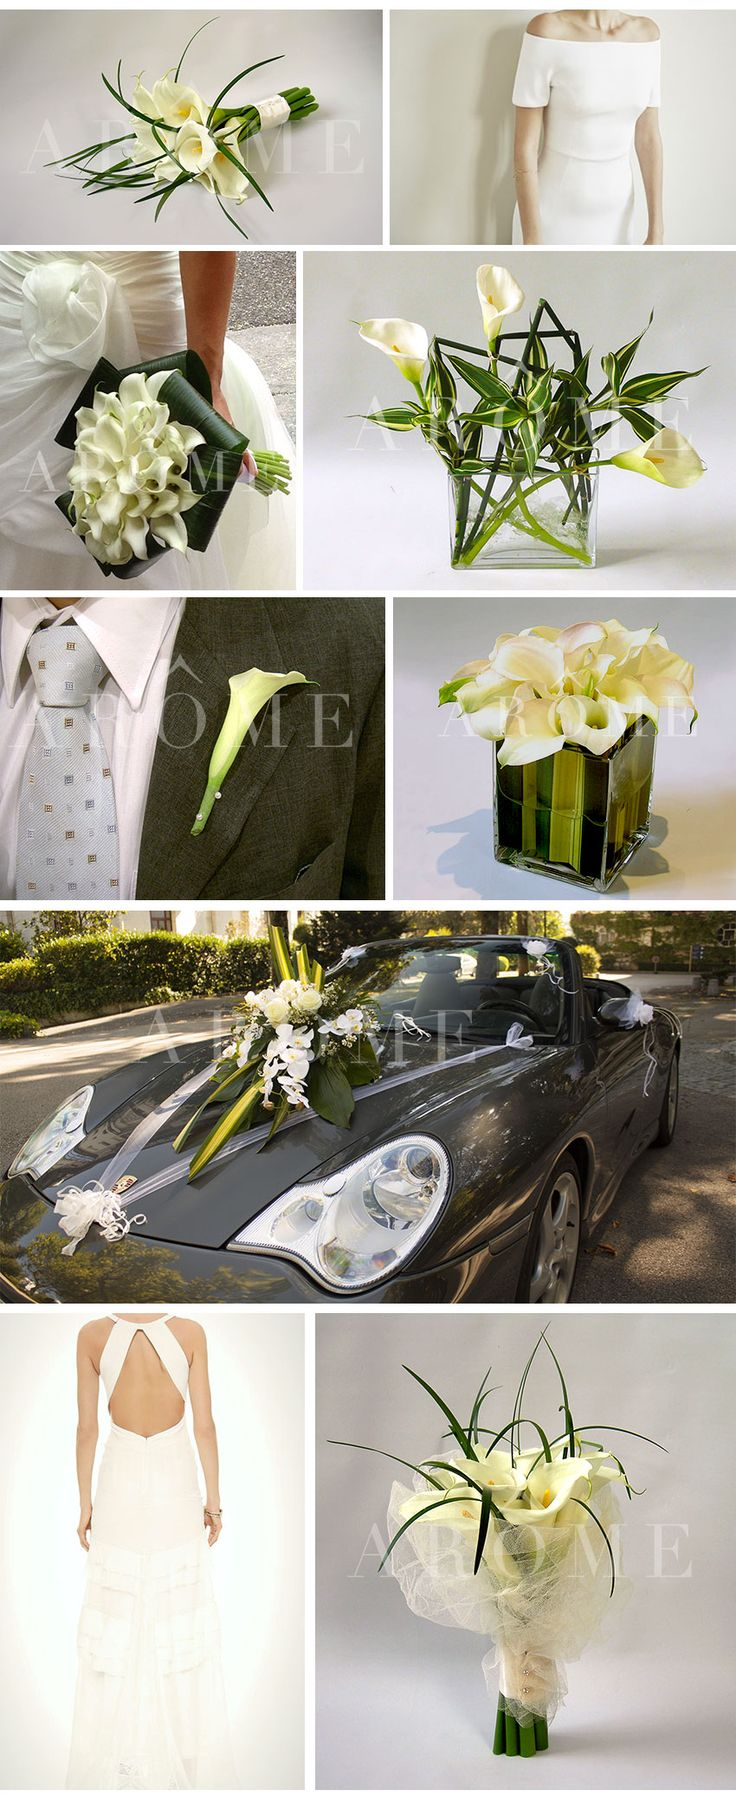 les 25 meilleures id es de la cat gorie d corations de voiture de mariage sur pinterest. Black Bedroom Furniture Sets. Home Design Ideas